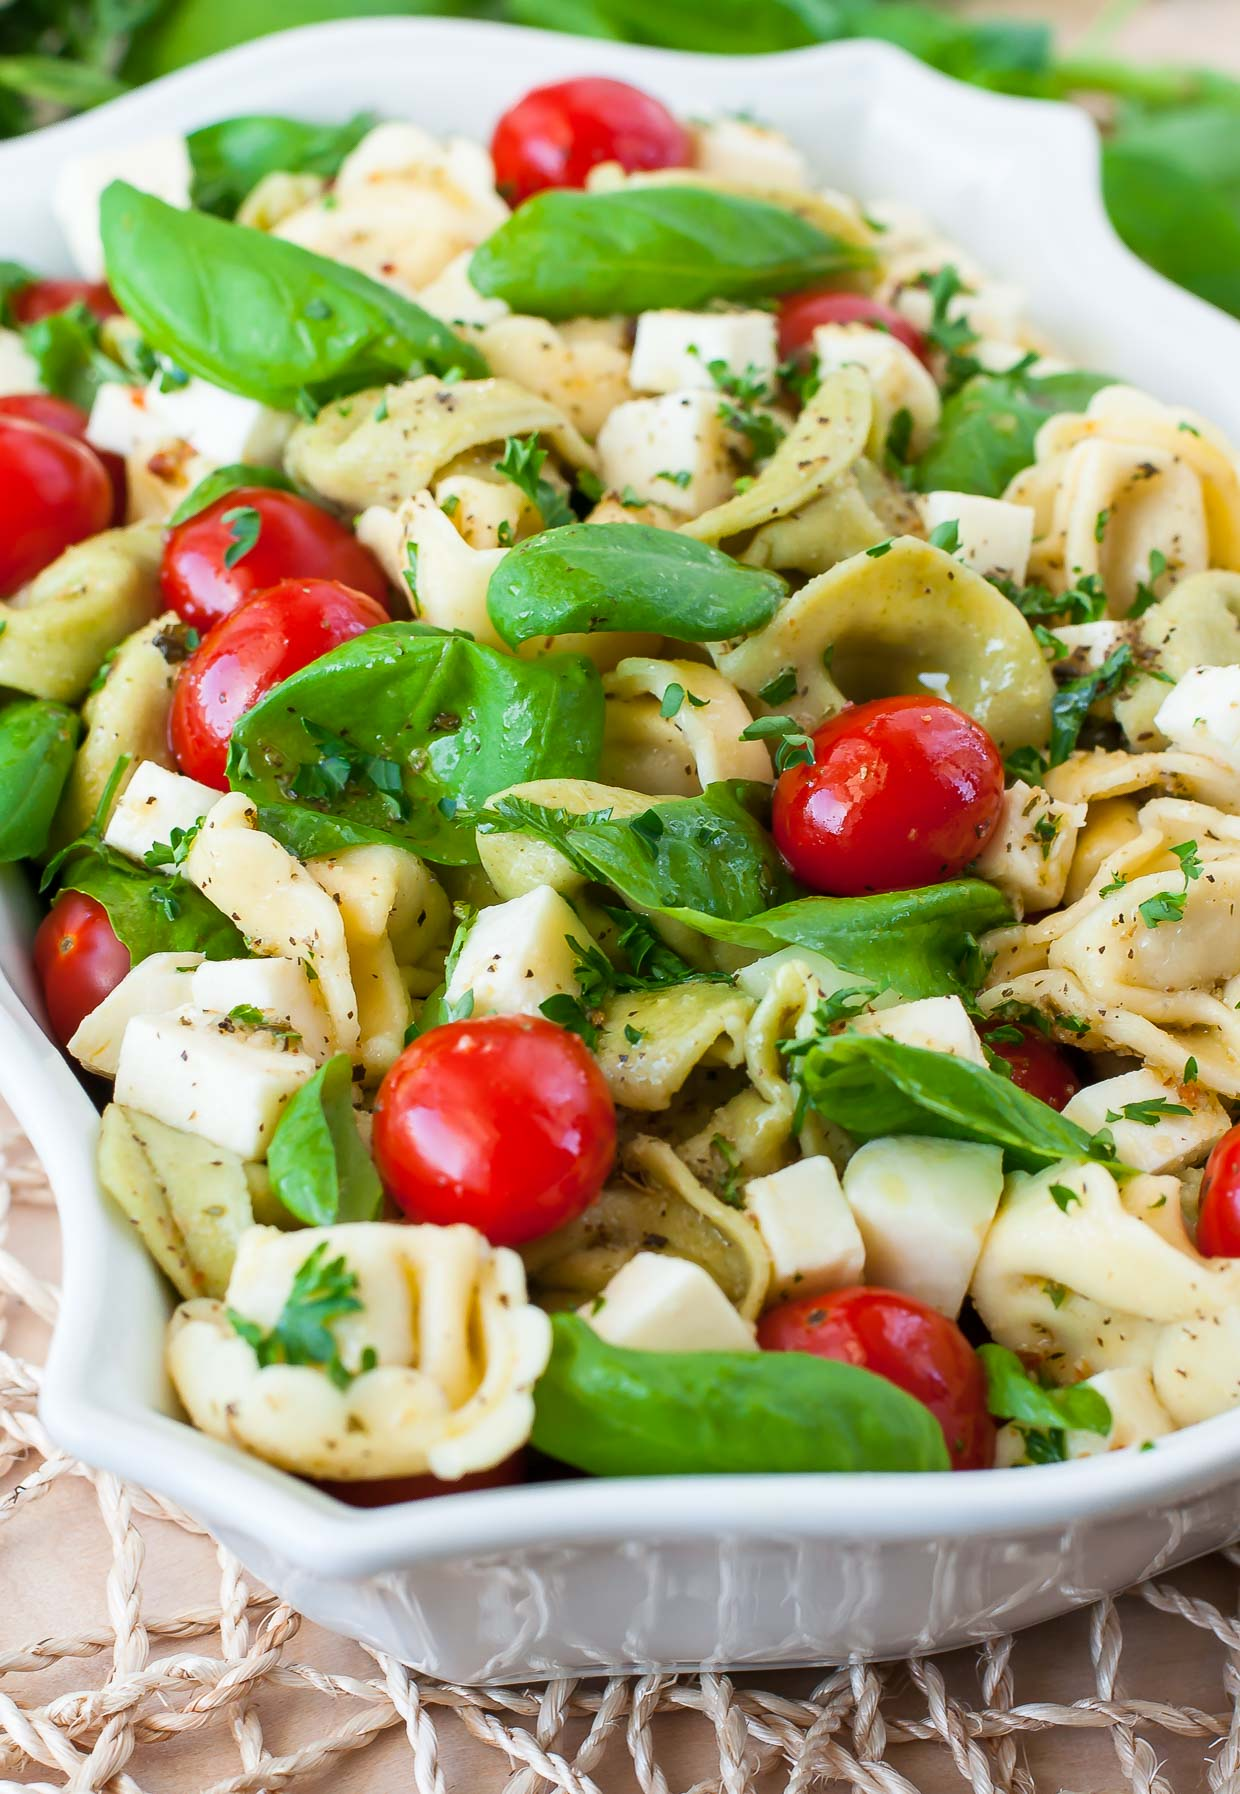 Just when you thought pasta salad couldn't get any better: This caprese tortellini pasta salad is sure to win hearts and tastebuds at your next party or BBQ!